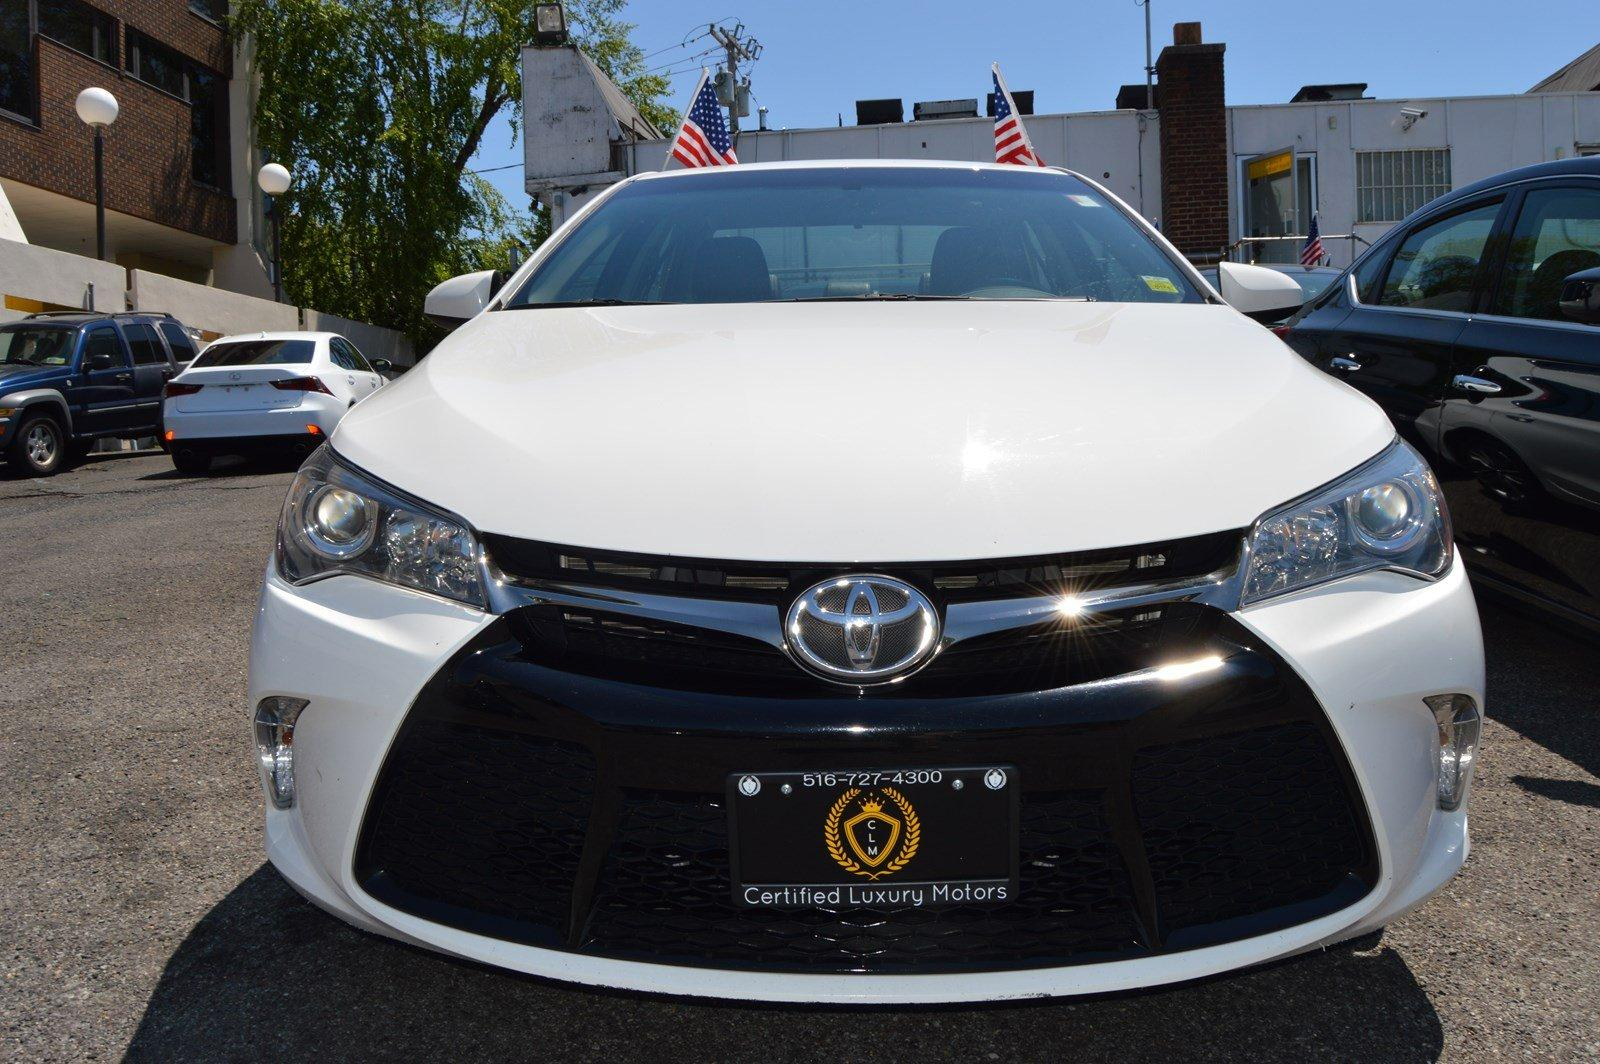 2016 toyota camry se stock 2490 for sale near great neck for Certified luxury motors great neck ny